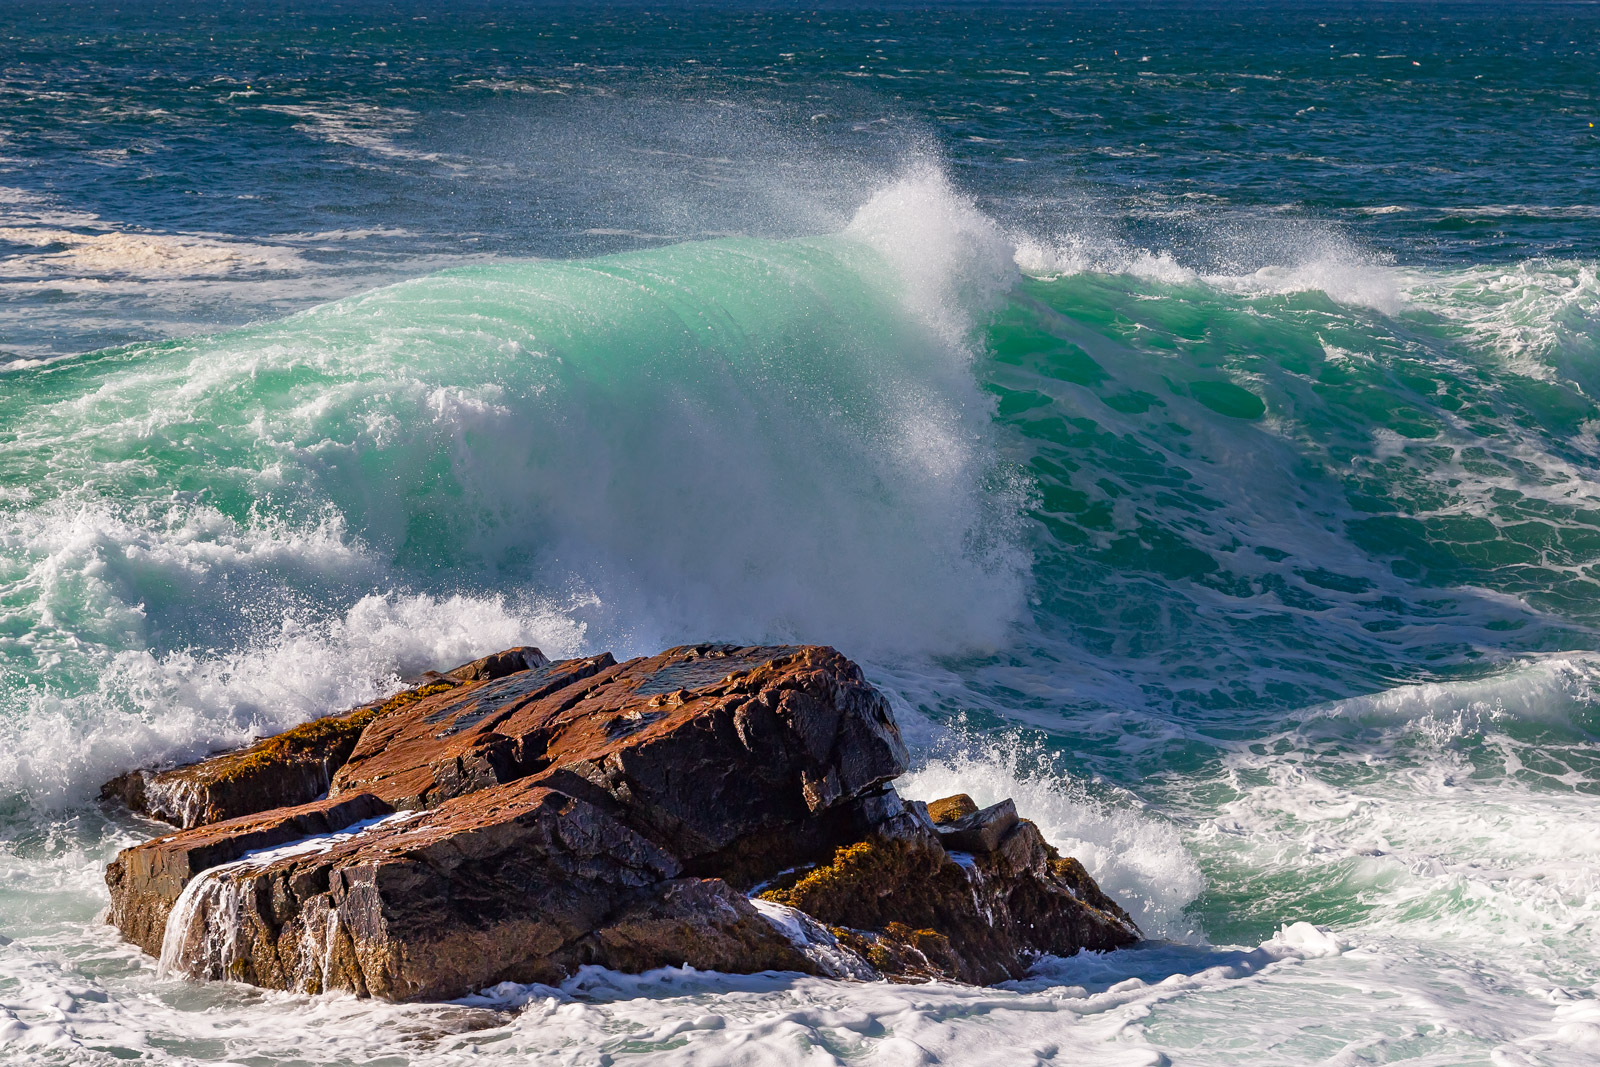 A Limited Edition, Fine Art photograph of a large green and aqua storm wave breaking over rocks at Acadia National Park in Maine...